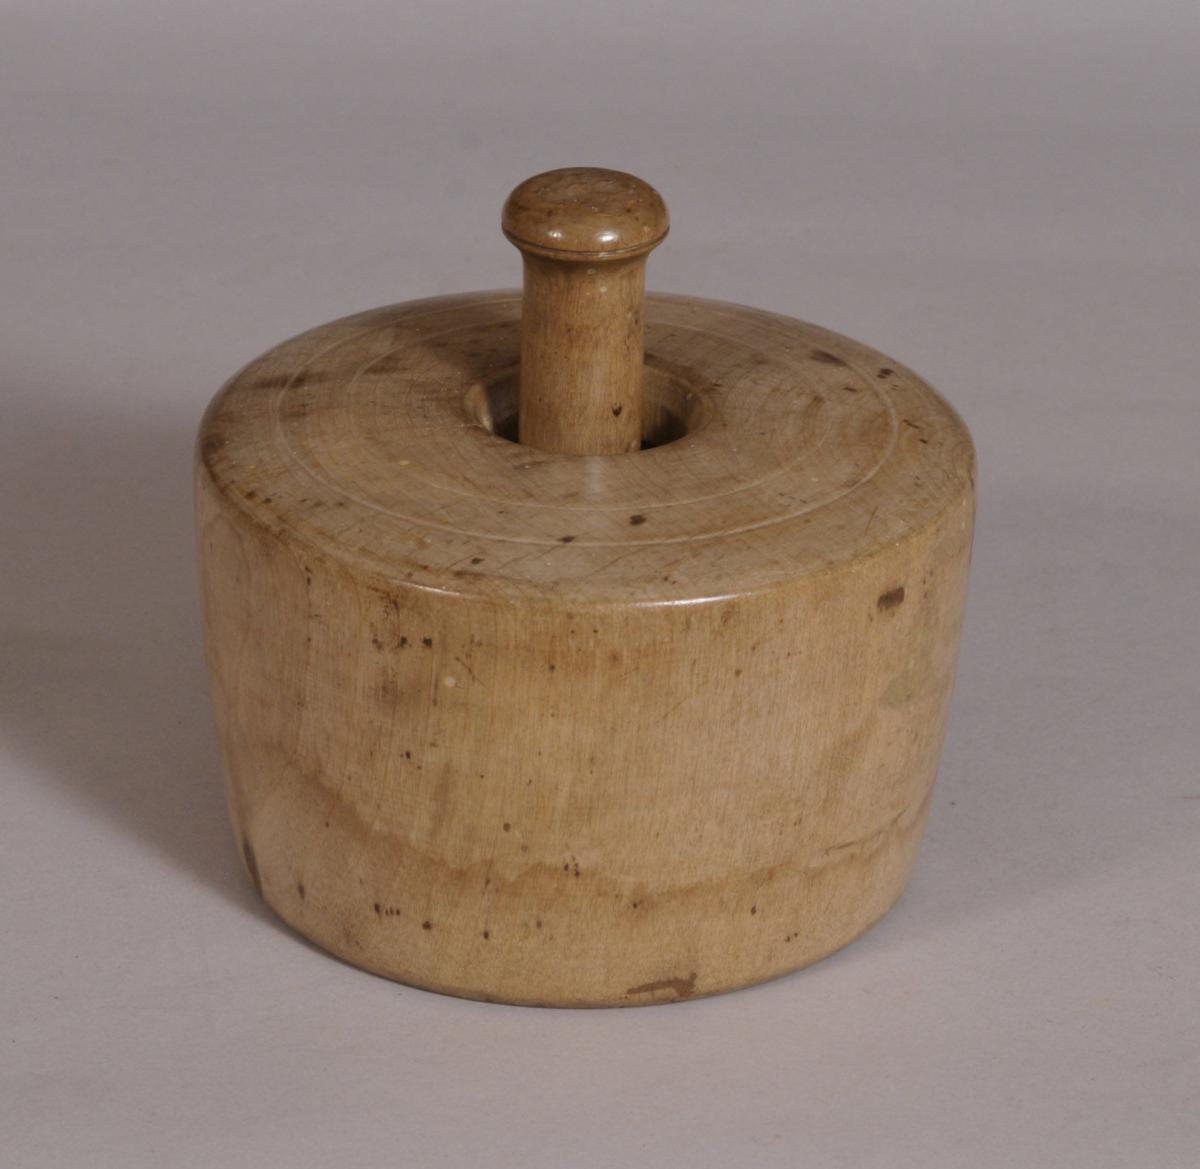 S/3614 Antique Treen 19th Century Large Sycamore Butter Stamp